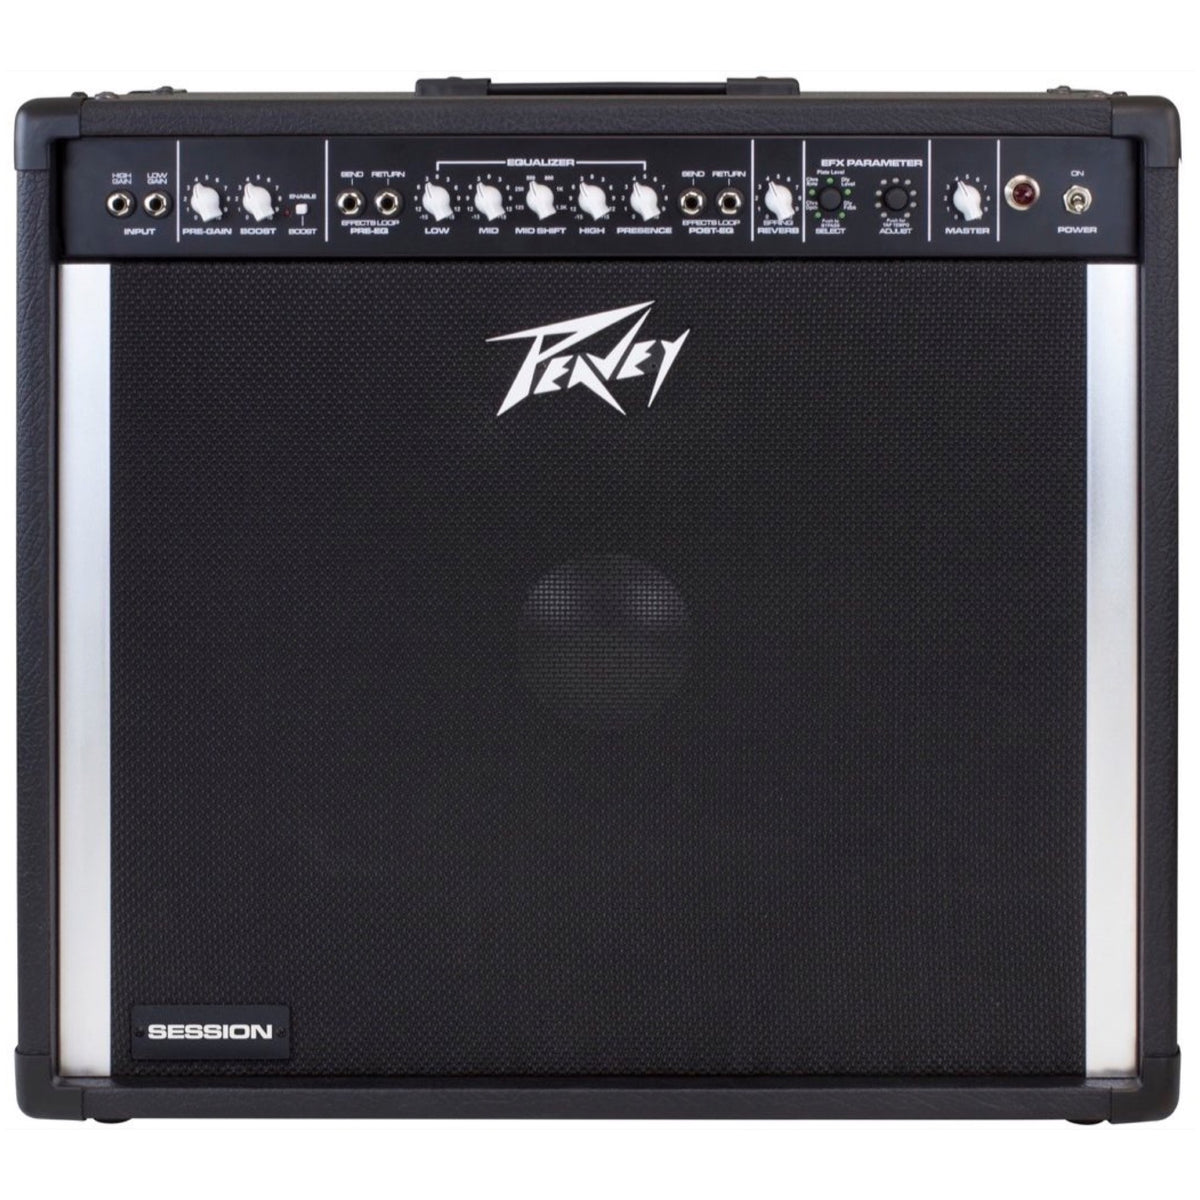 Peavey Session 115 Pedal Steel Guitar Combo Amplifier (500 Watts, 1x15 Inch)